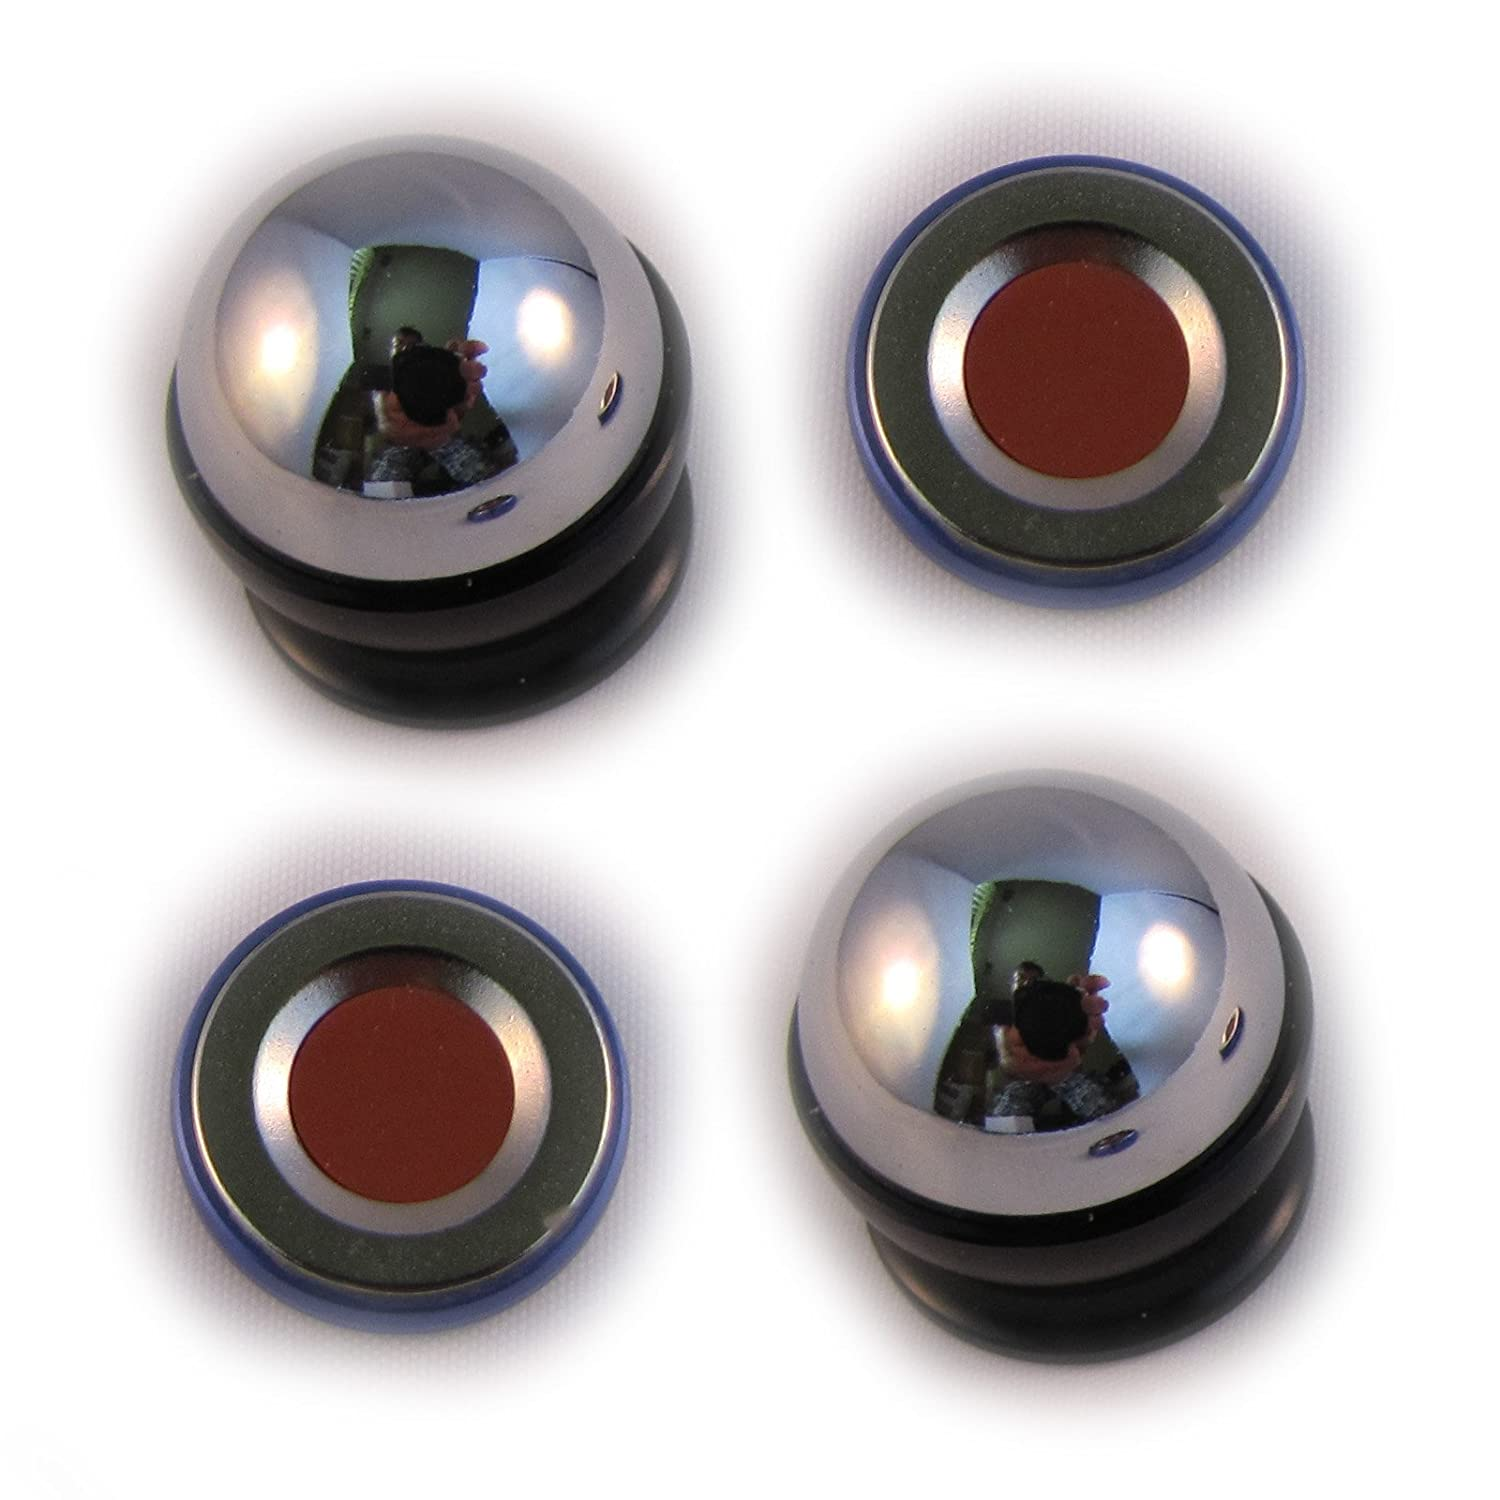 DOUBLE Magnetic Dash Mount Kit for Cell Phones. 2 Dash Balls and 2 Strong Neodymium Magnets (2 Magnets + 2 Balls) Autoteline OMEL-EZ-PN-6721595